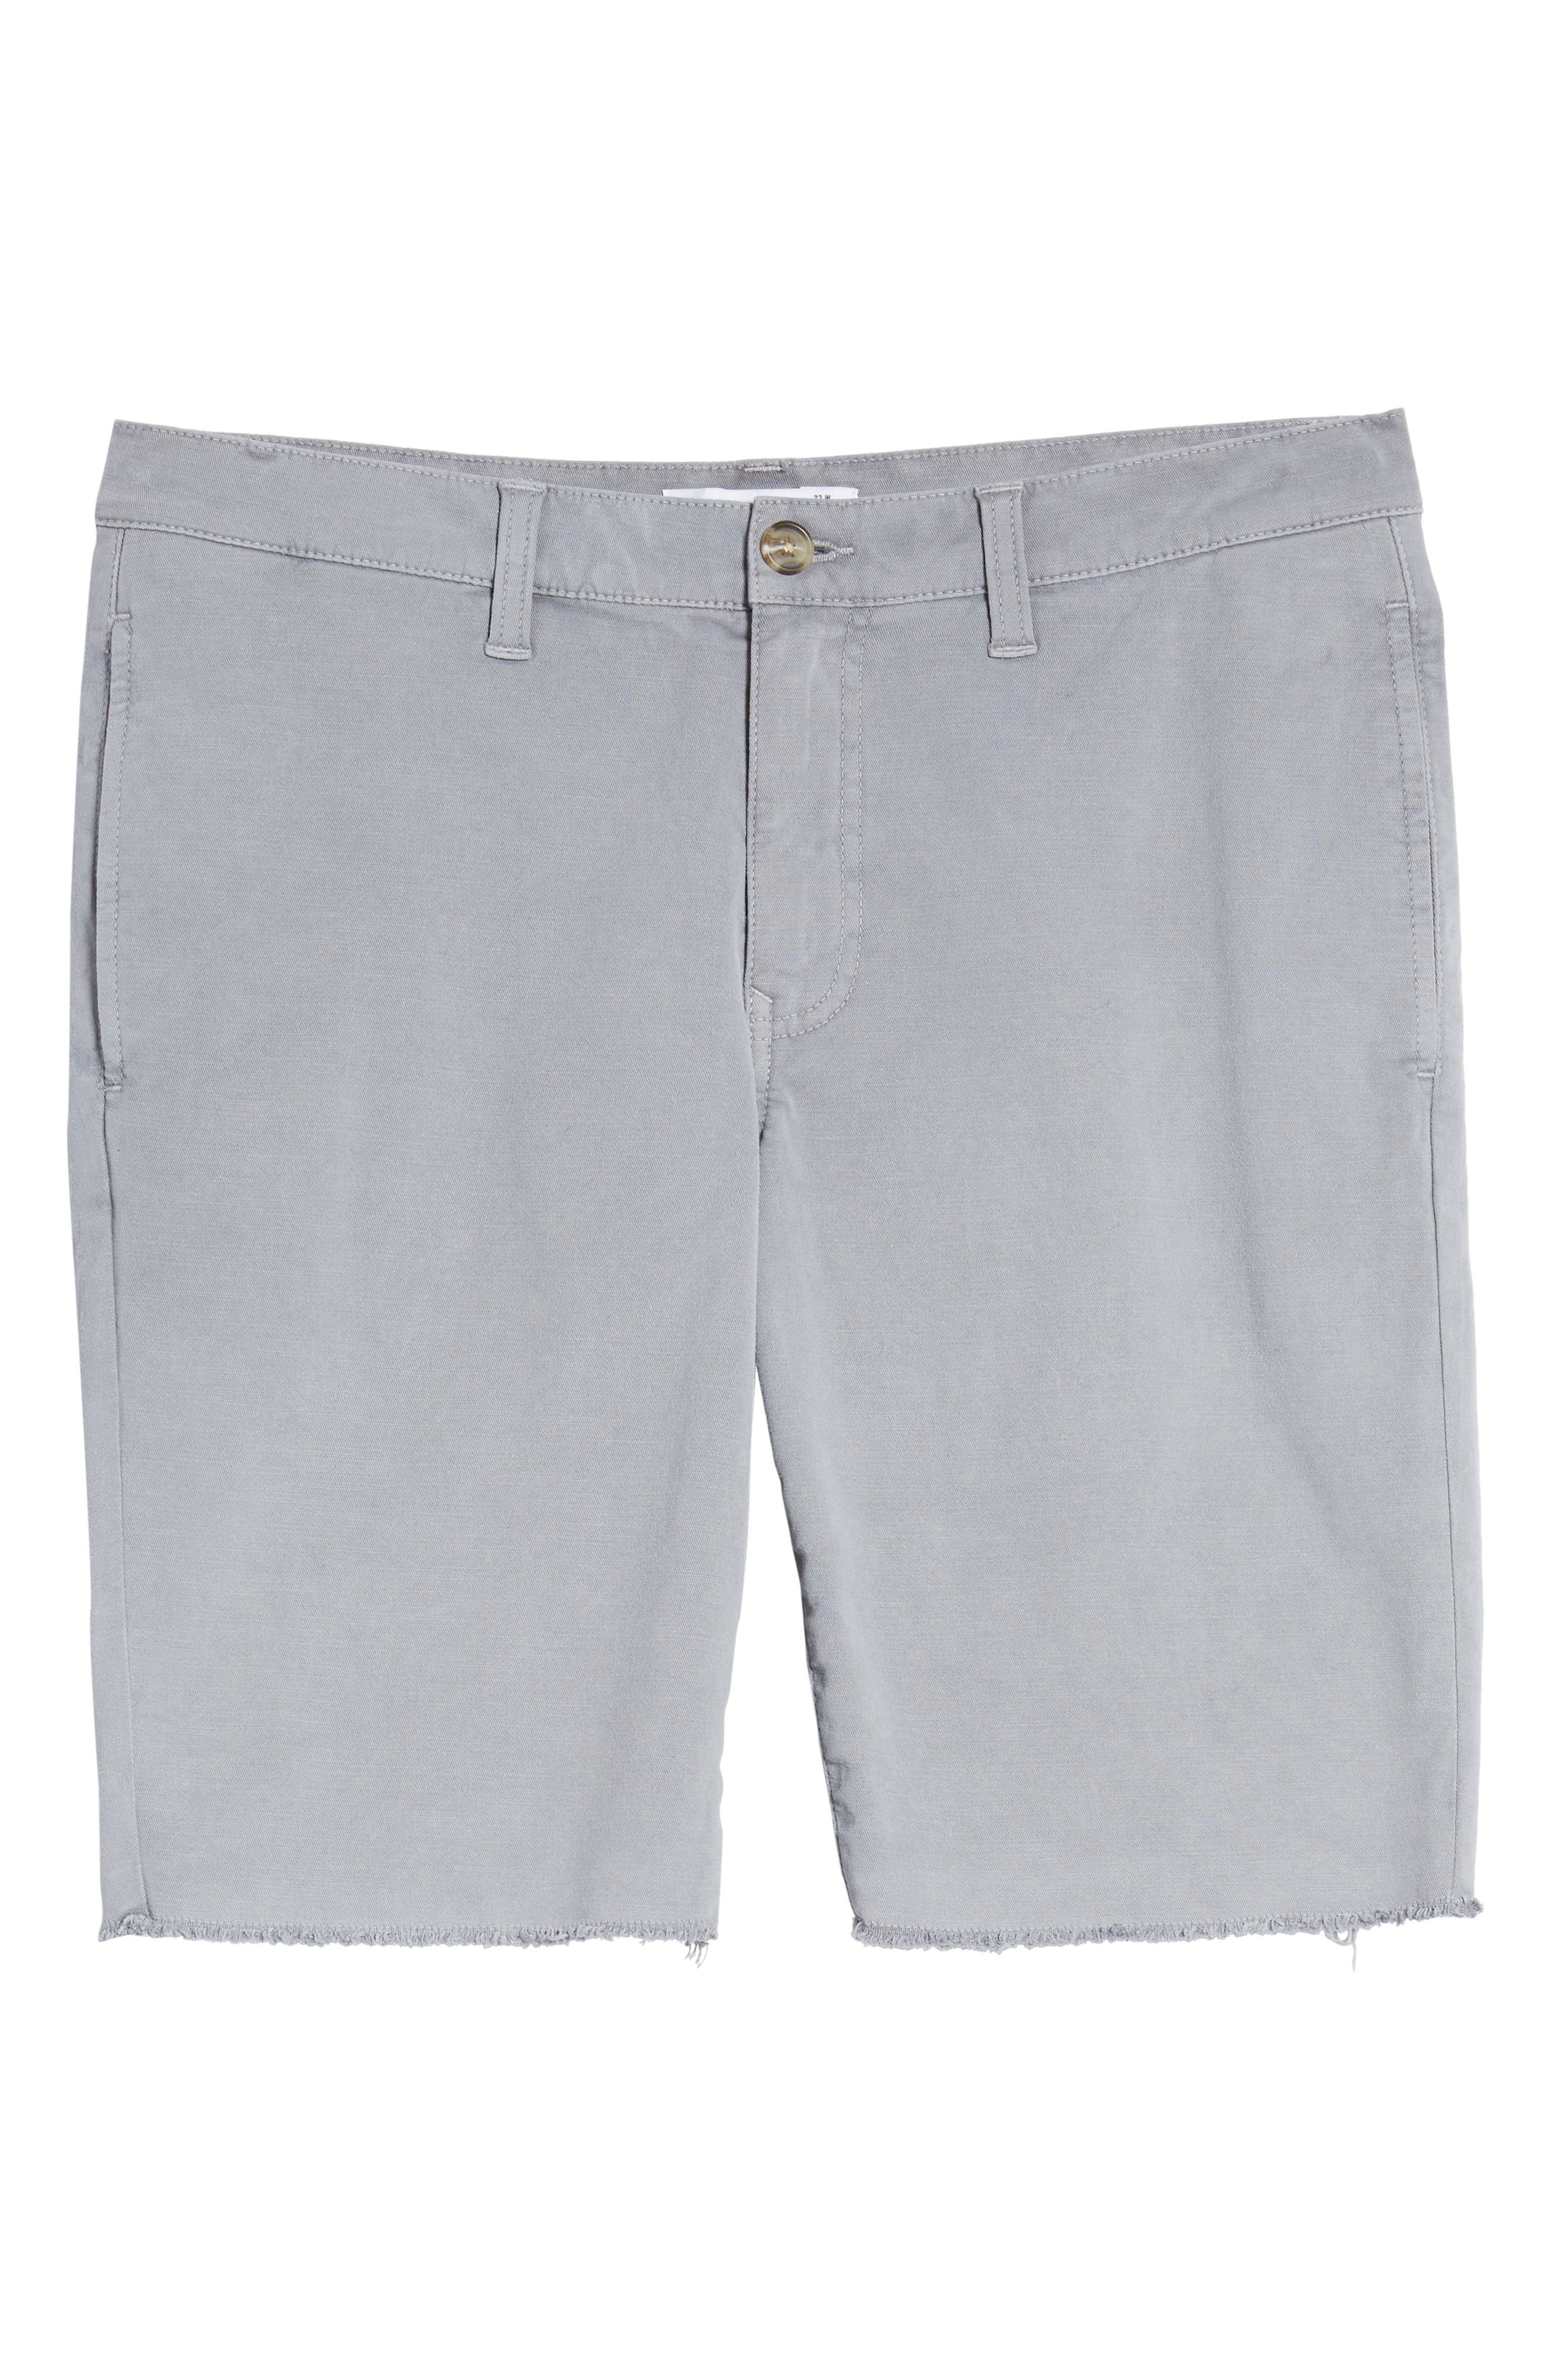 Frost Wash Shorts,                             Alternate thumbnail 6, color,                             Grey Sleet